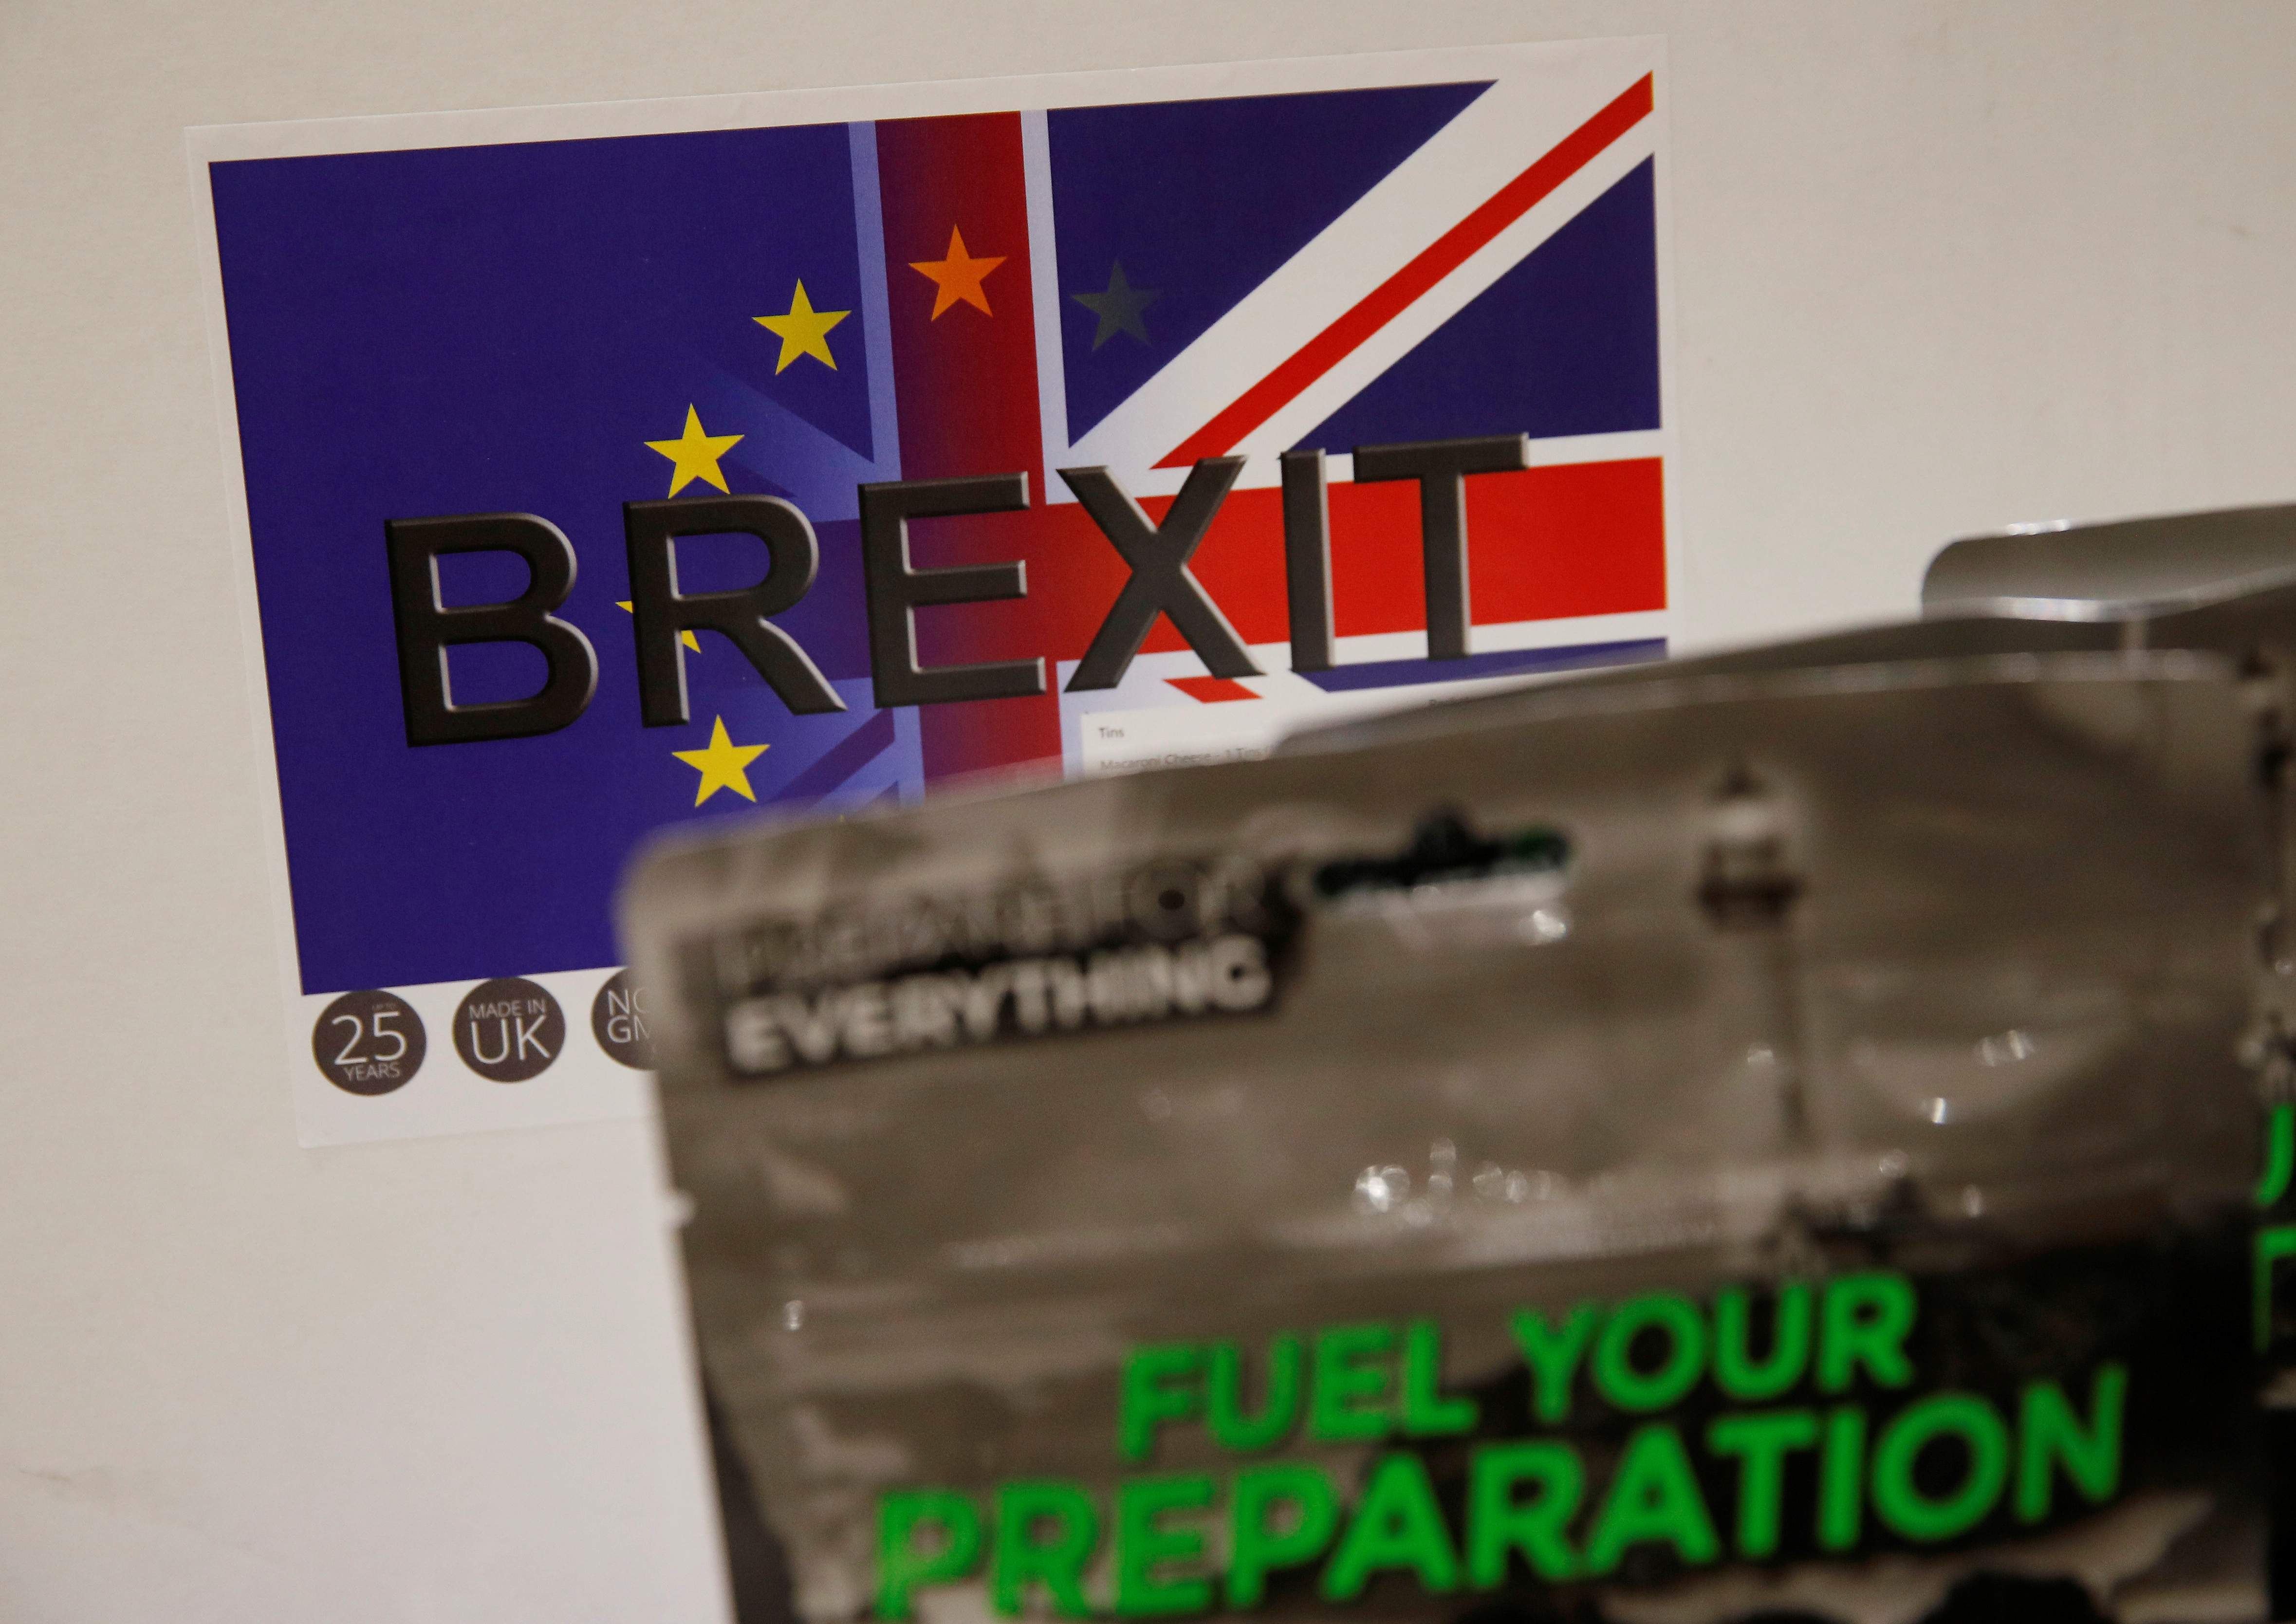 BREXIT-BOX-KIT-SUPERVIVIENCIA-REUTERS.jpg